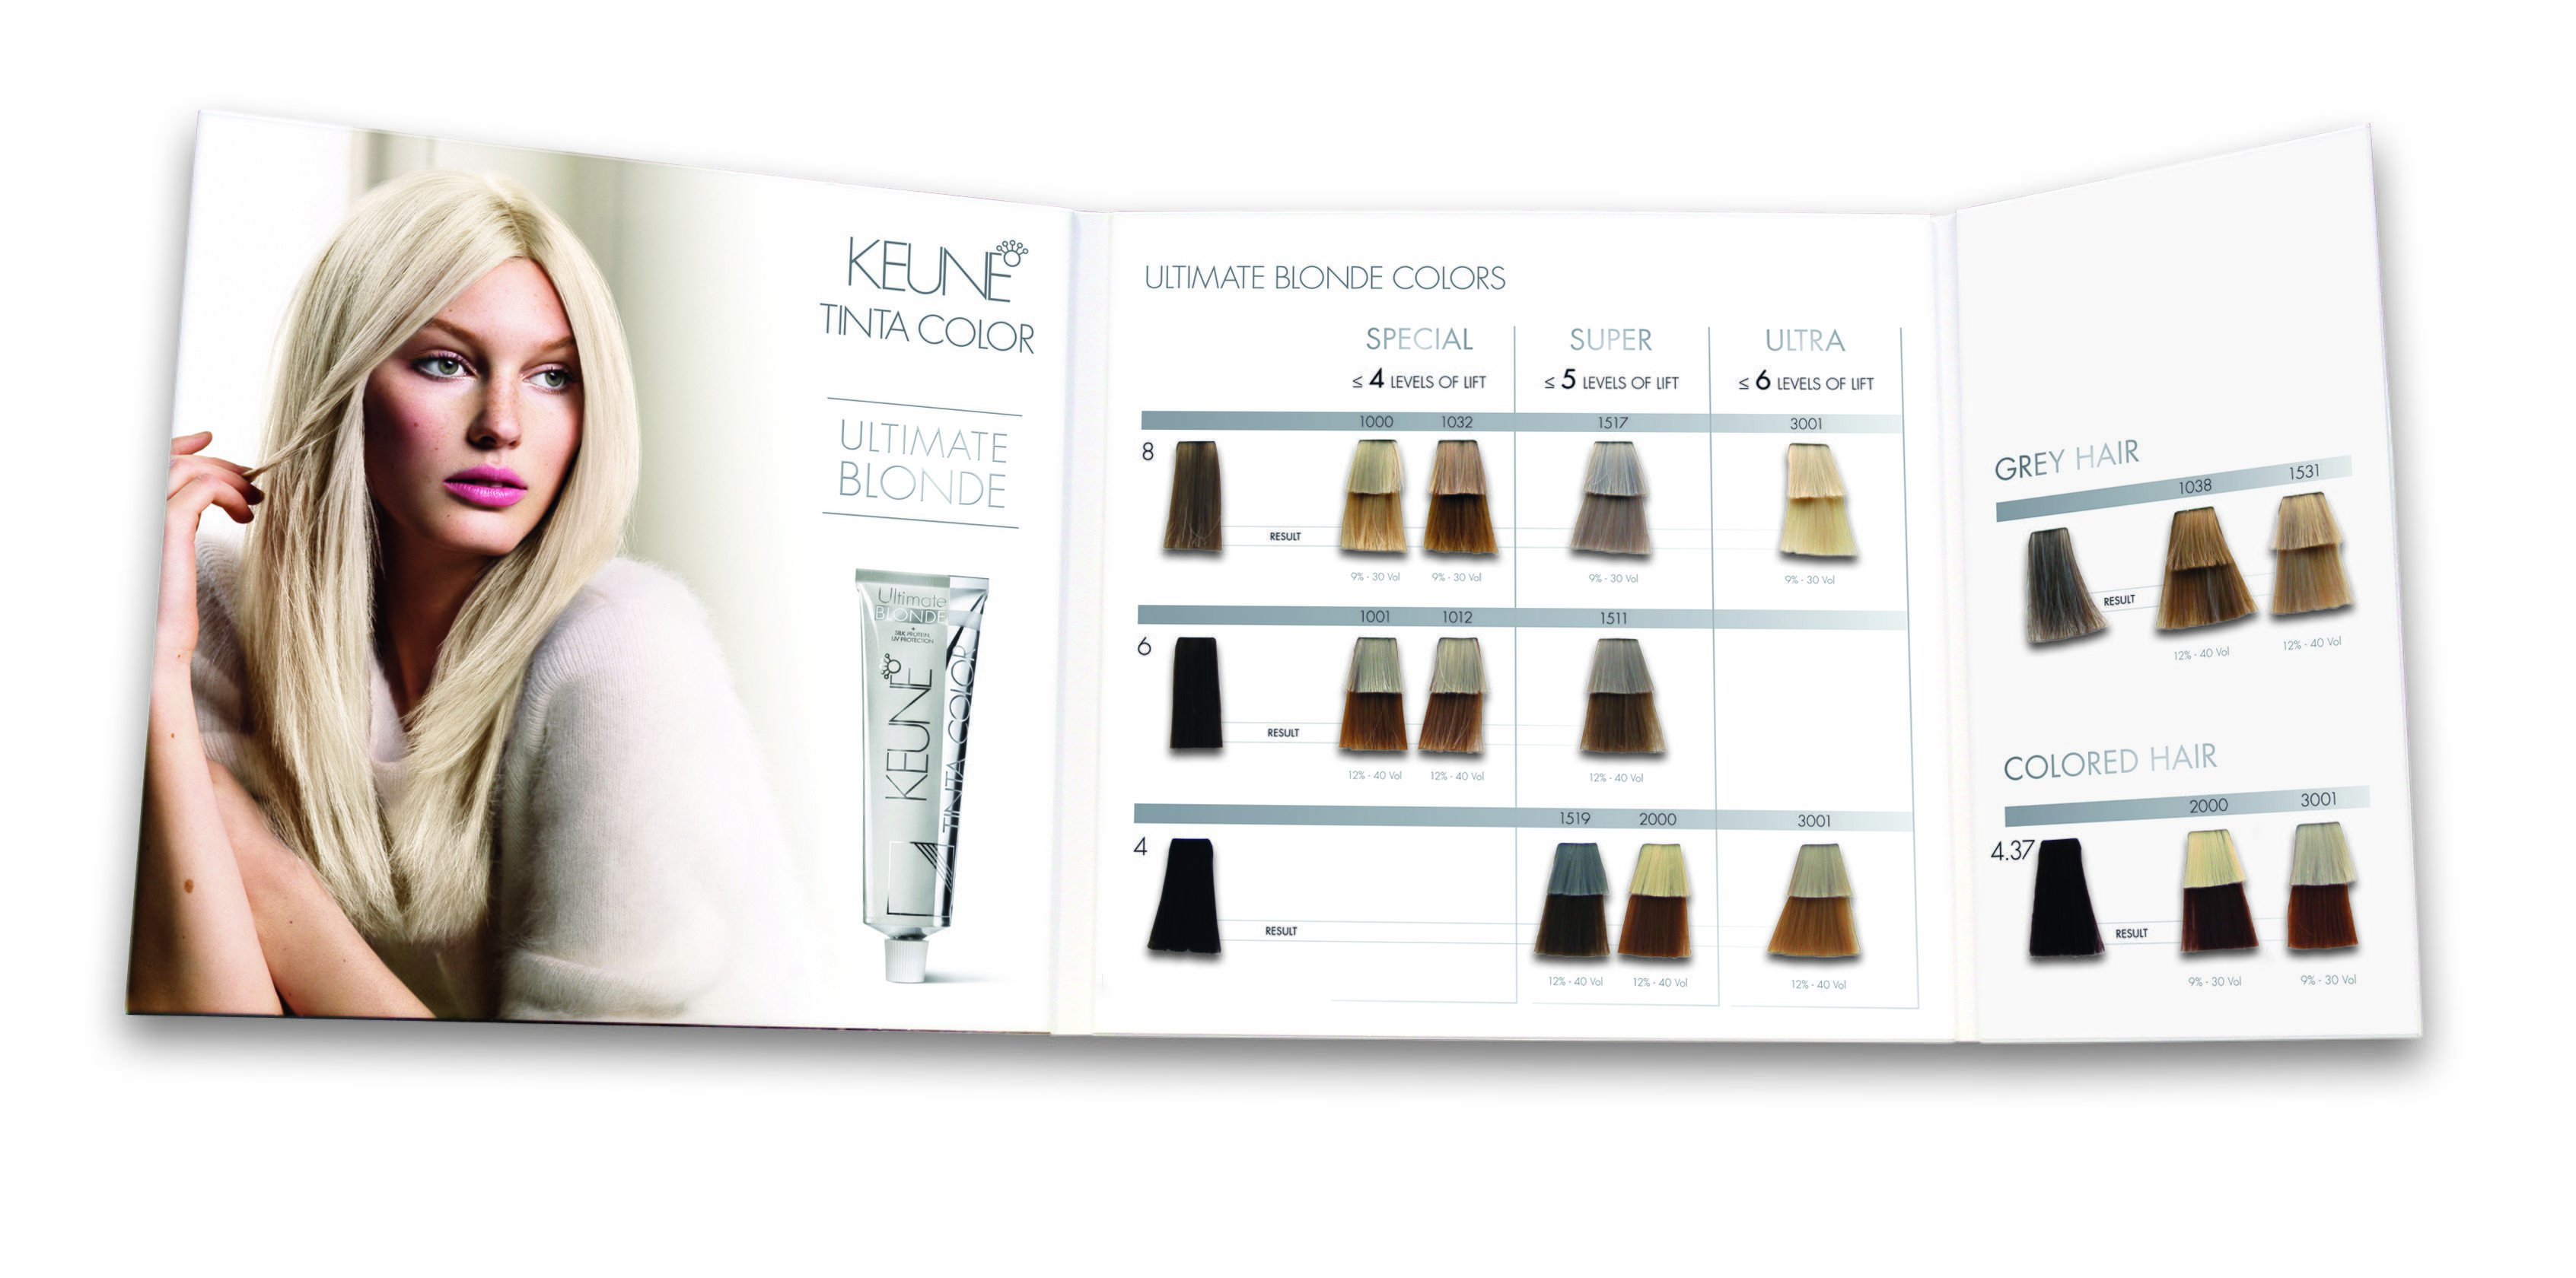 The Best Keune Tinta Color Ultimate Blonde Swatch Book Keune Pictures